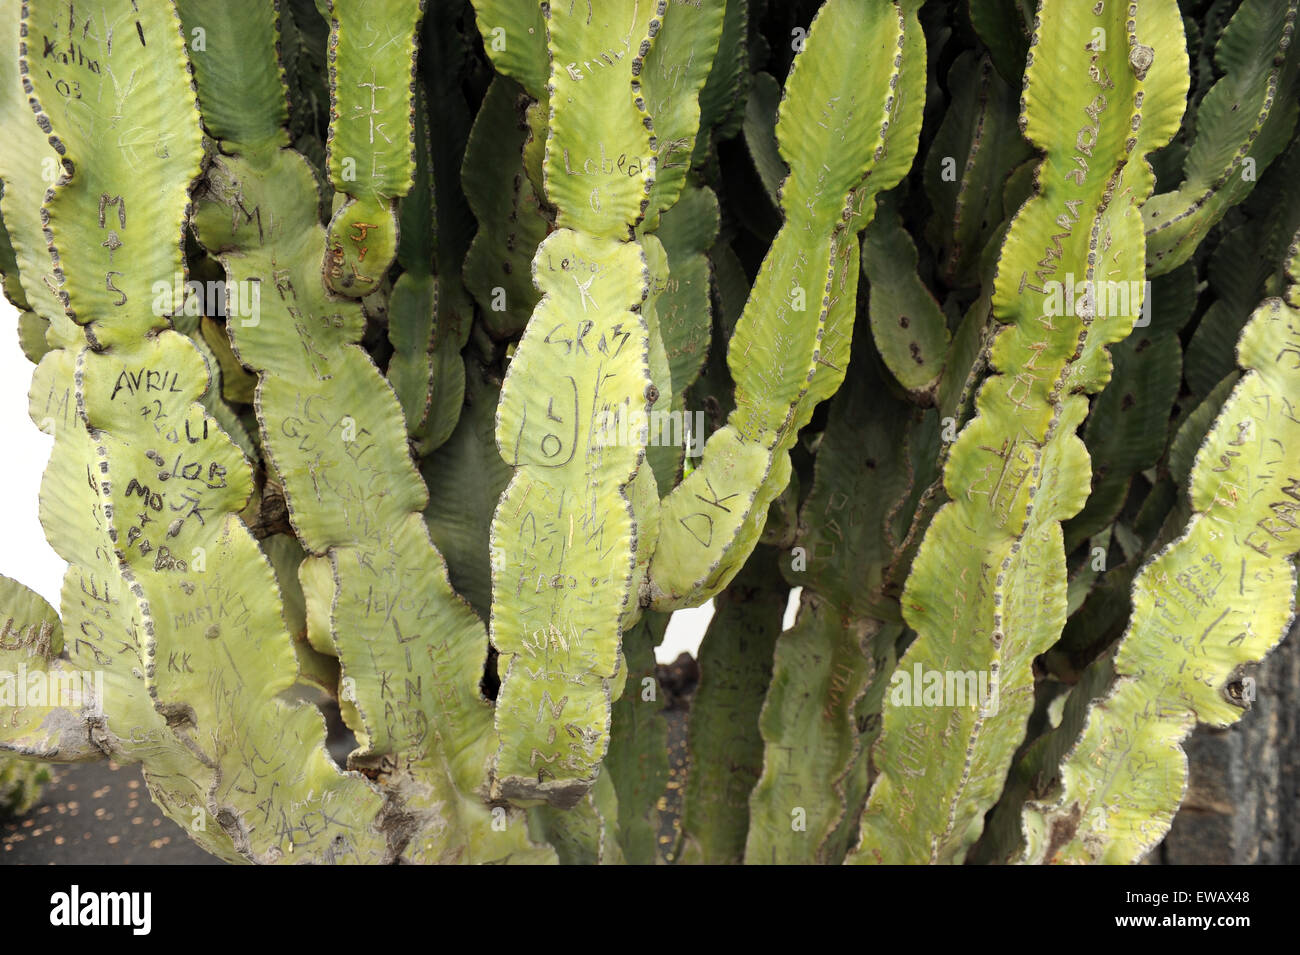 Lanzarote, Canary Islands. Writings in cactus that is situated near the entrance of a cactus park that was designed - Stock Image